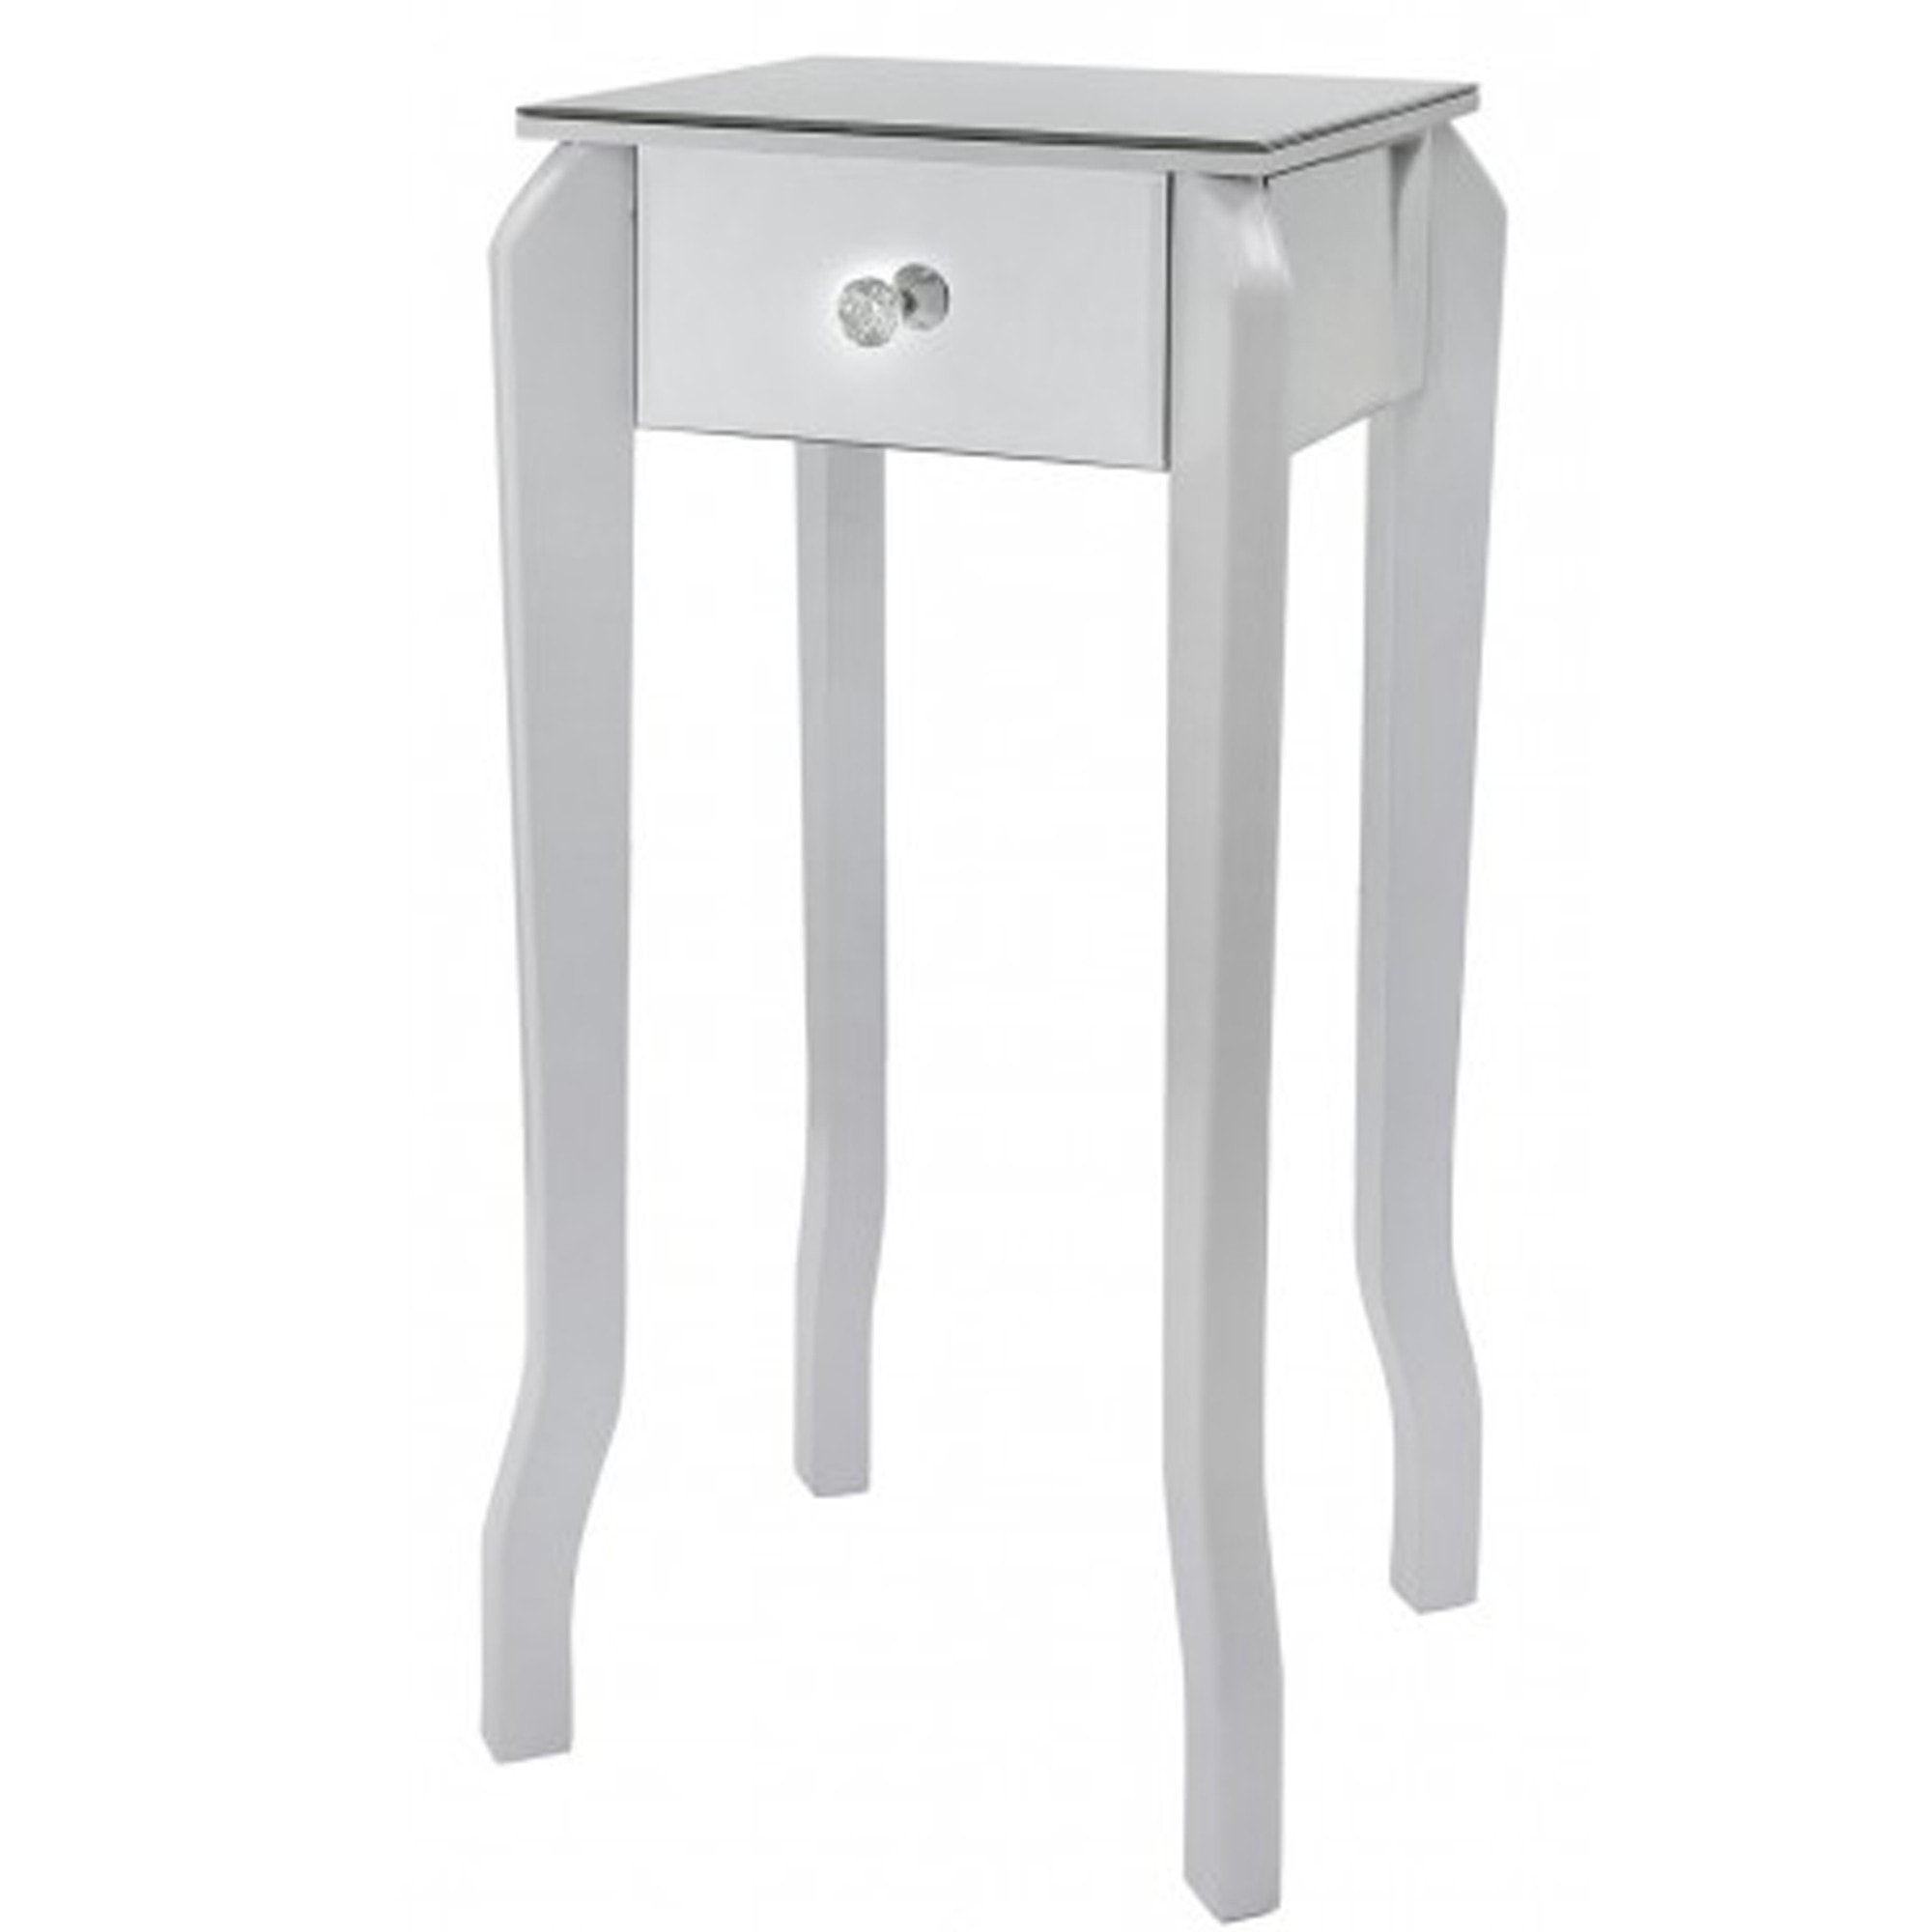 White And Mirror End Table Mirrored, Narrow Mirrored Side Table